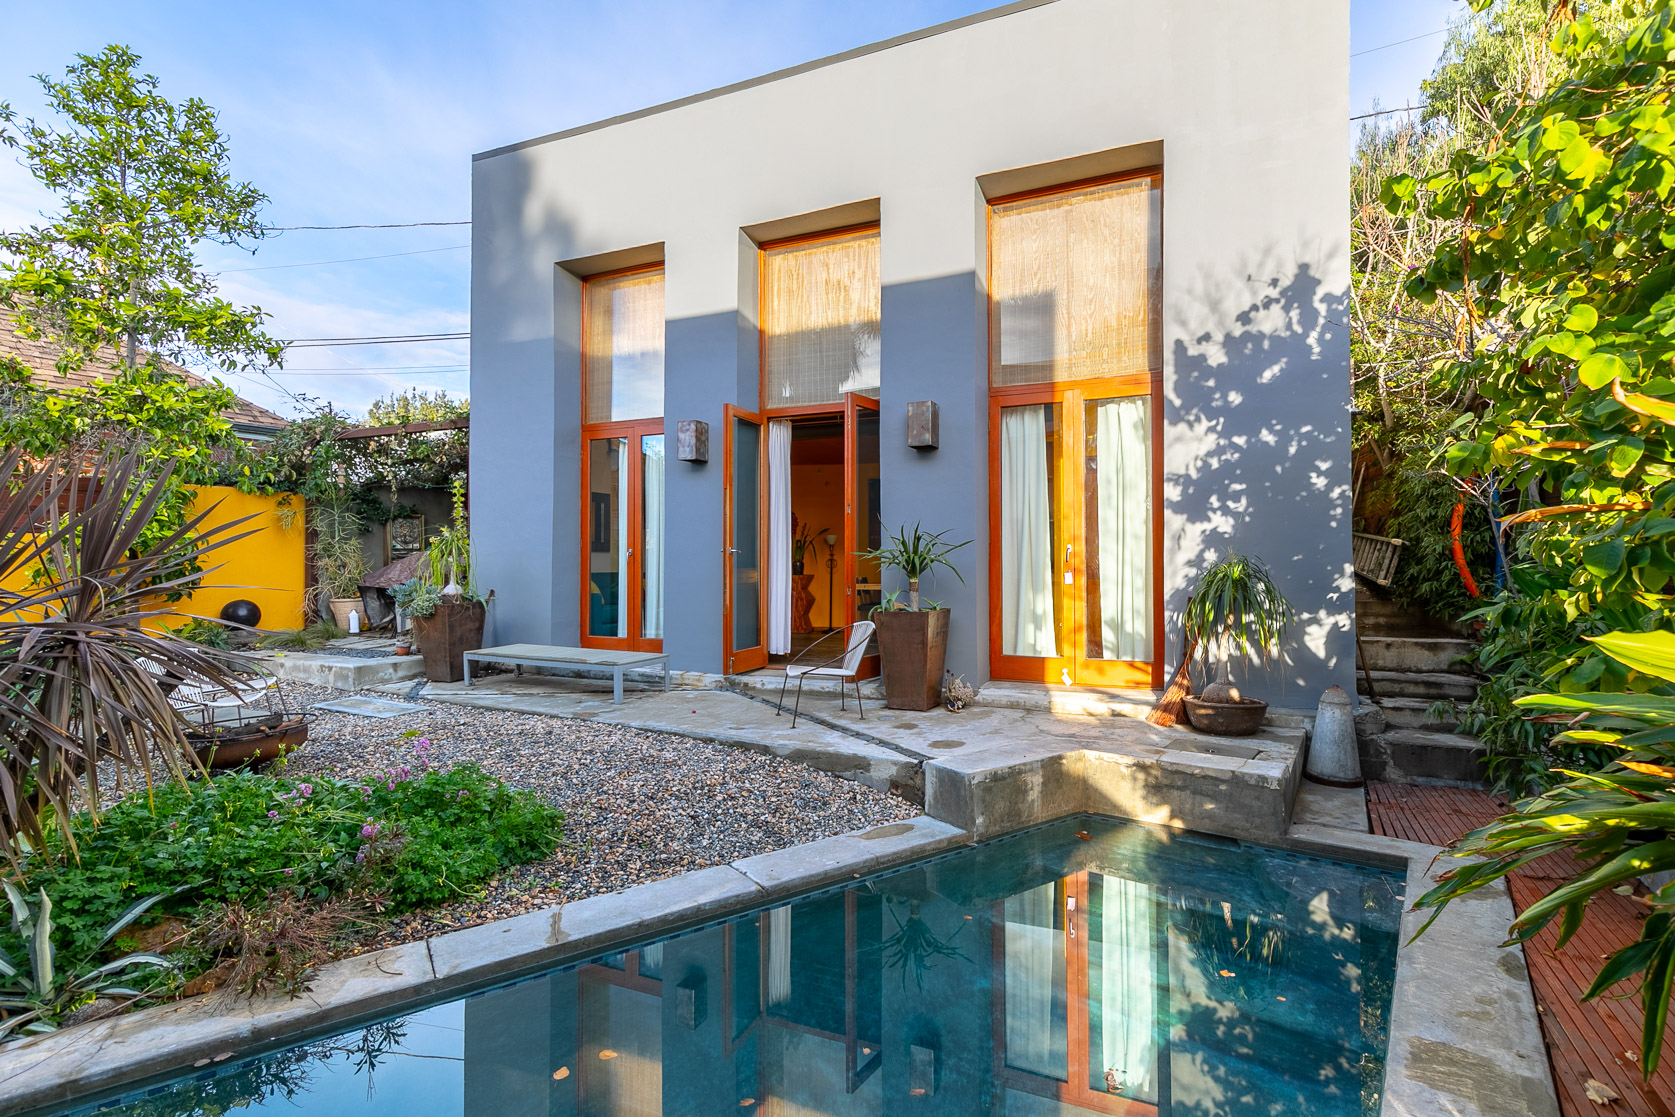 Cheerful and Vibrant Detached Pool House! Loft Style & Fully Furnished! Nestled in Franklin Hills!